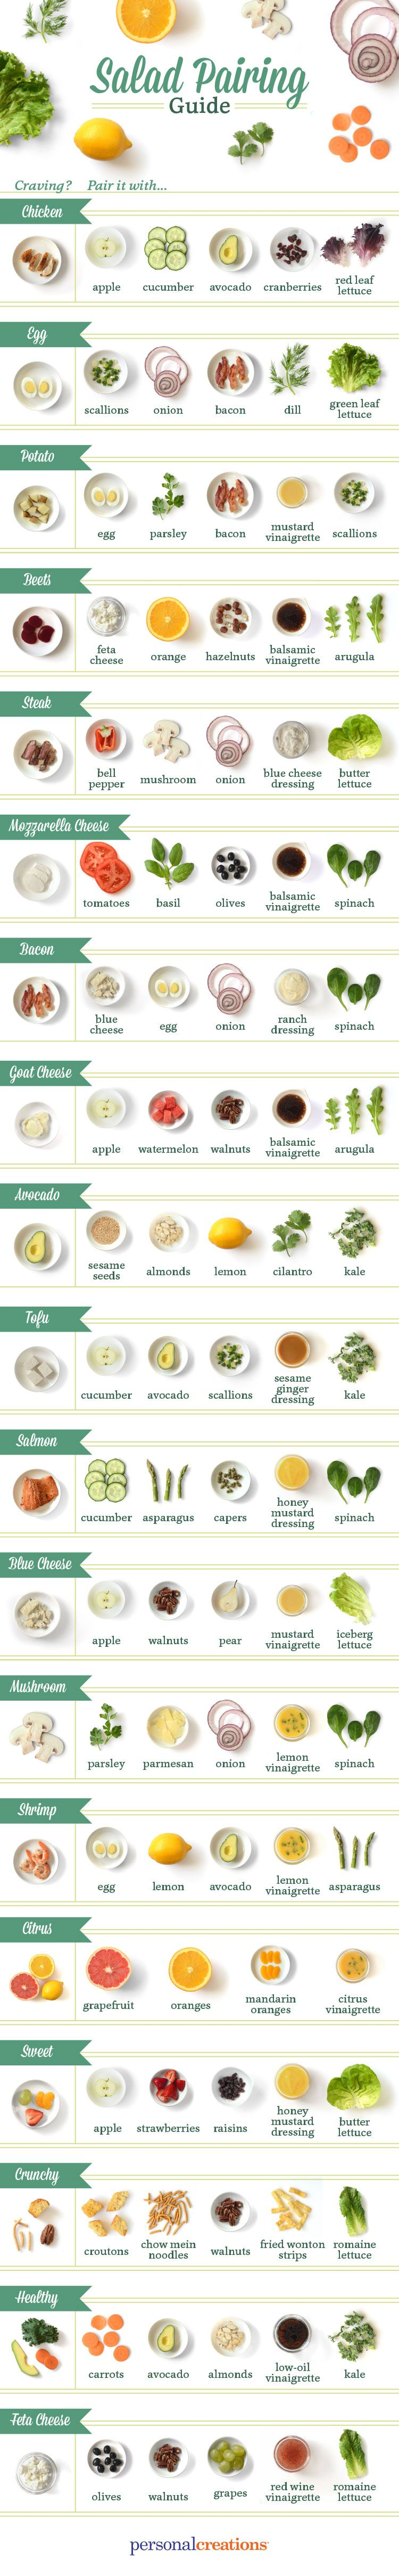 When the warm summer weather hits, I begin craving salad. After a while though, I finds myself eating the same combinations over and over again. Sometimes we get stuck in our patterns, which is why I'm loving this handy salad pairing guide. I just had to share! *Pinning this for later!